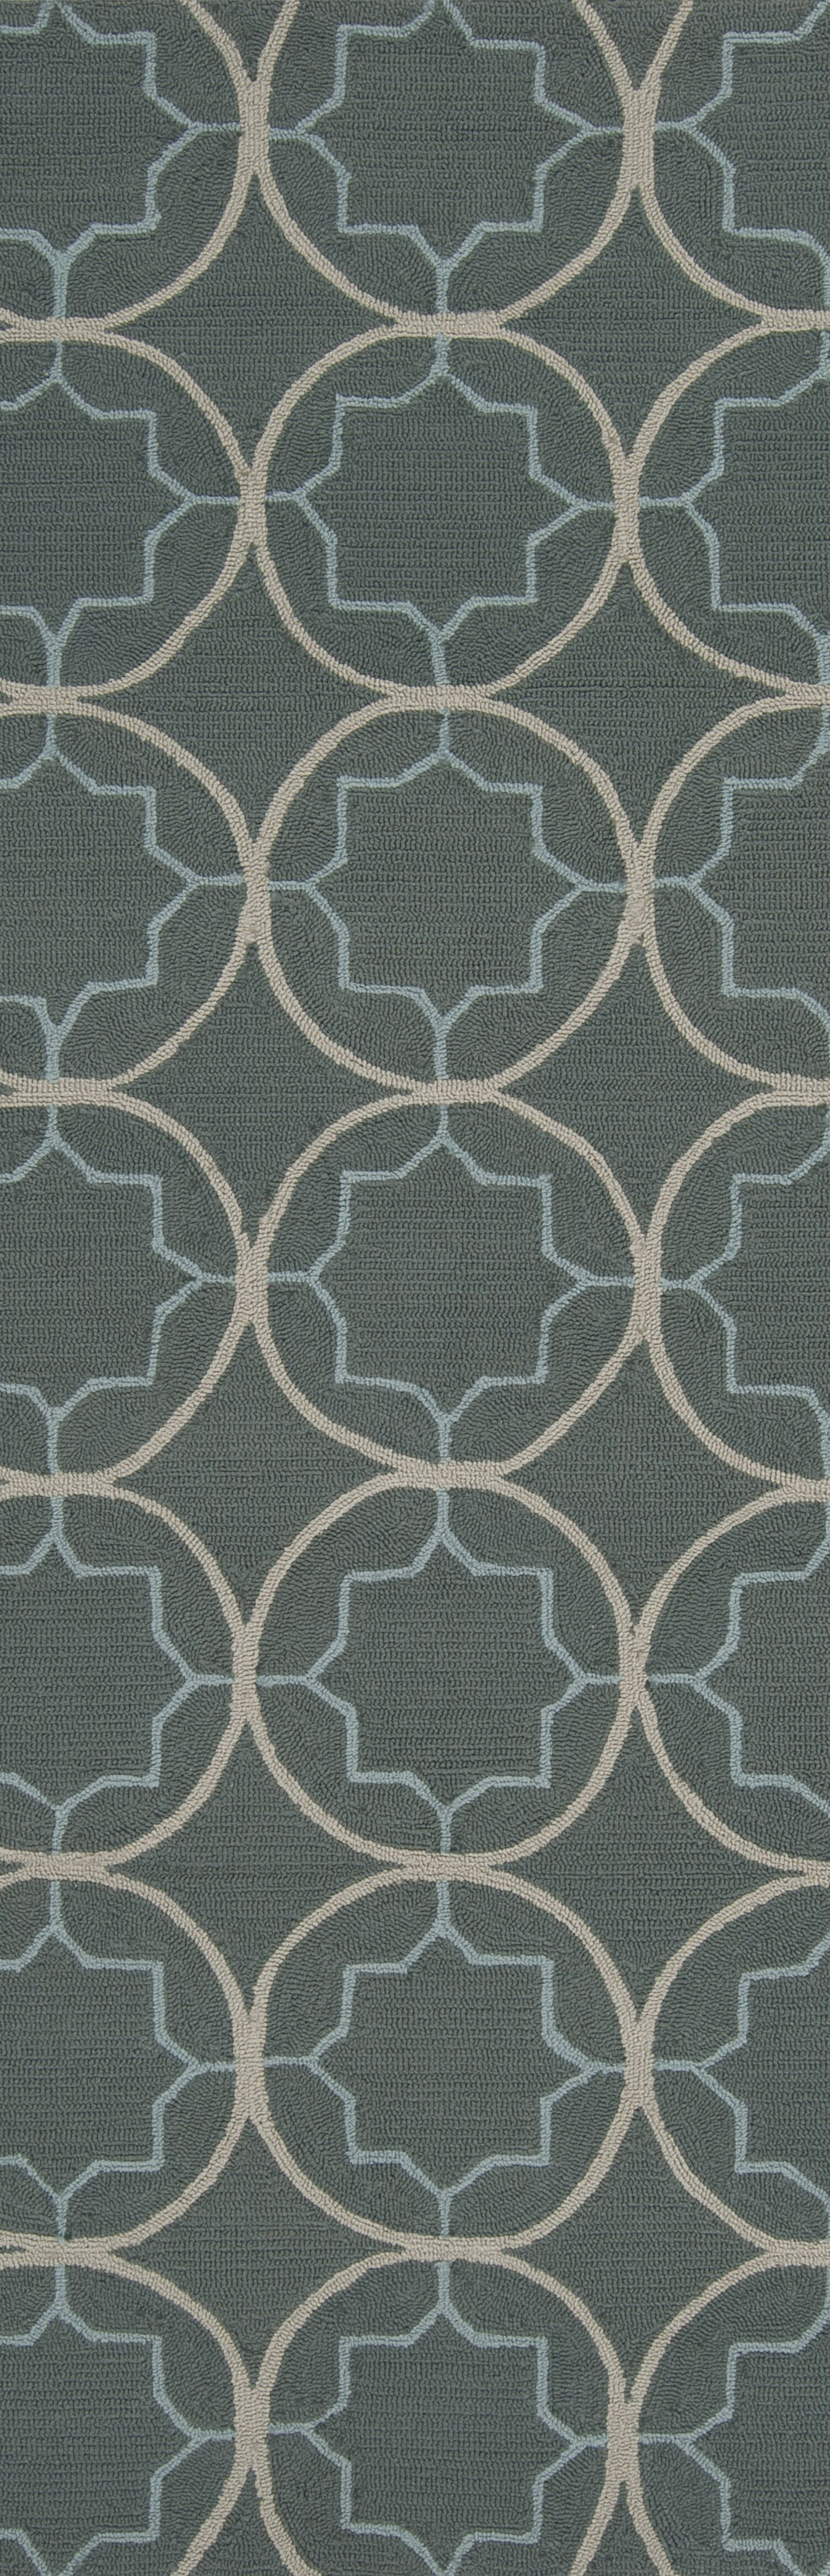 Becker Stormy Sea Circle Rug Rug Size: Runner 2'6